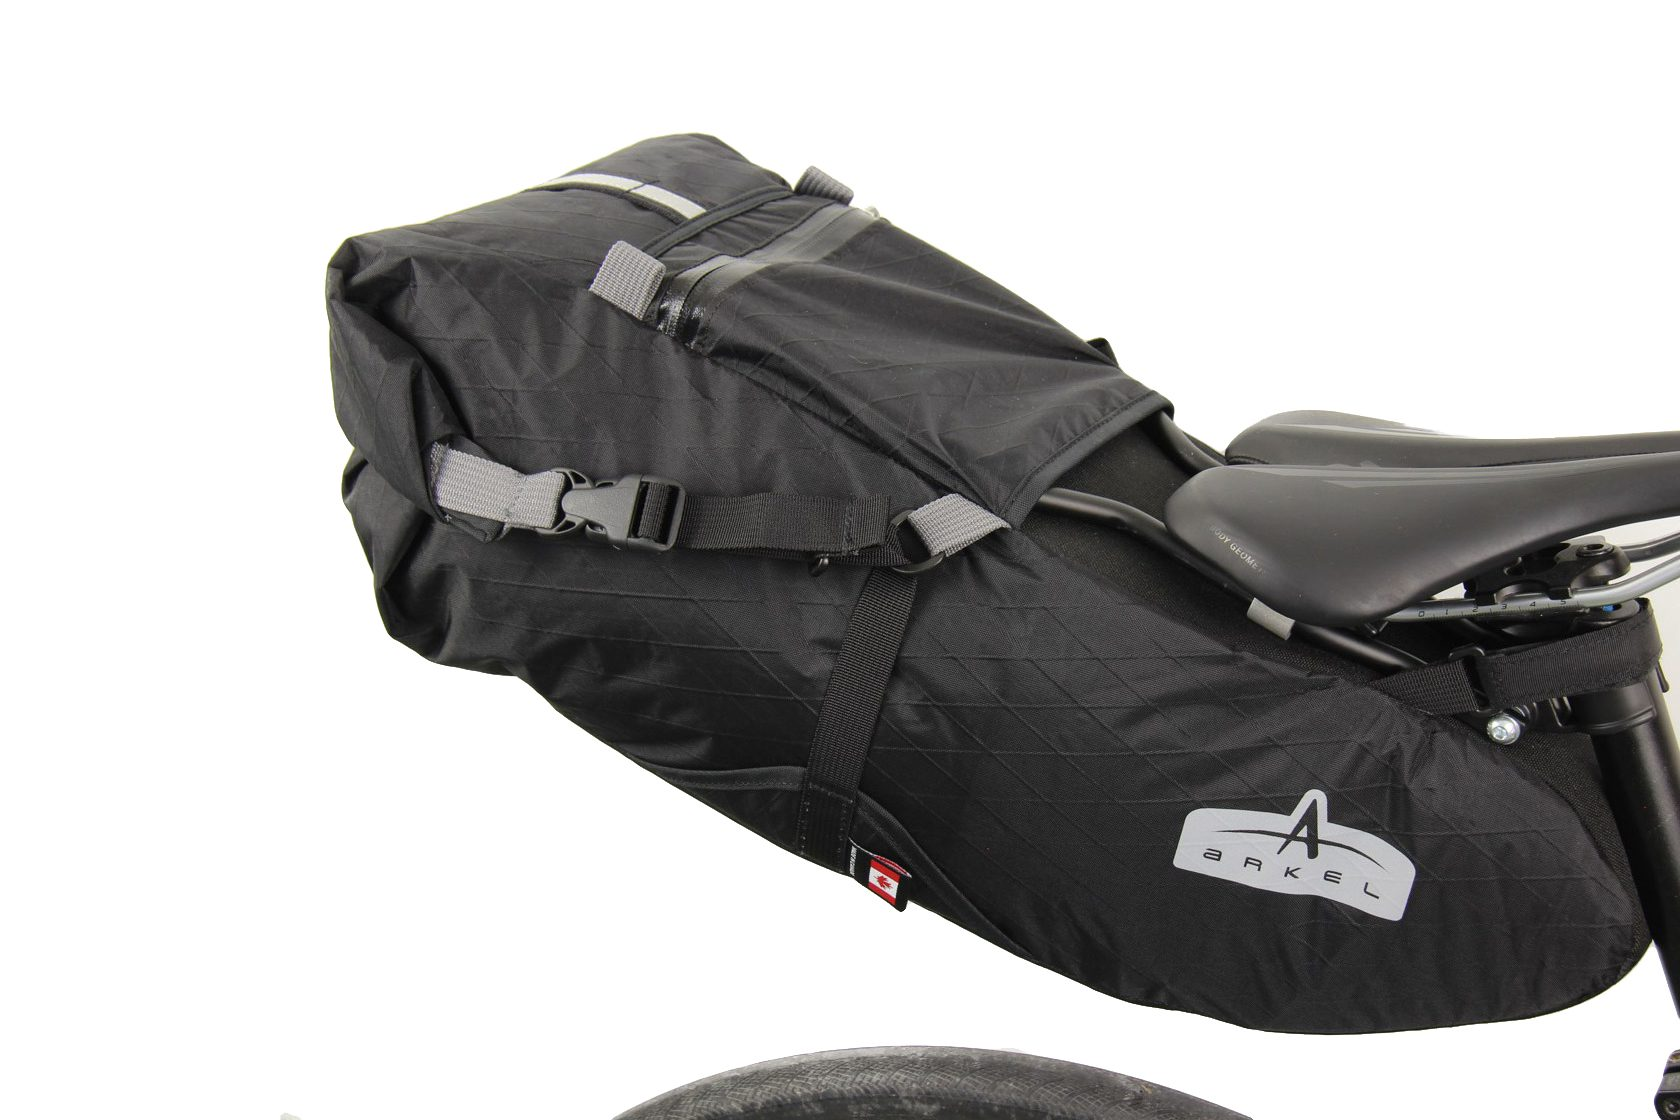 Arkel S New Rigid Frame Bikepacking Saddle Bag The